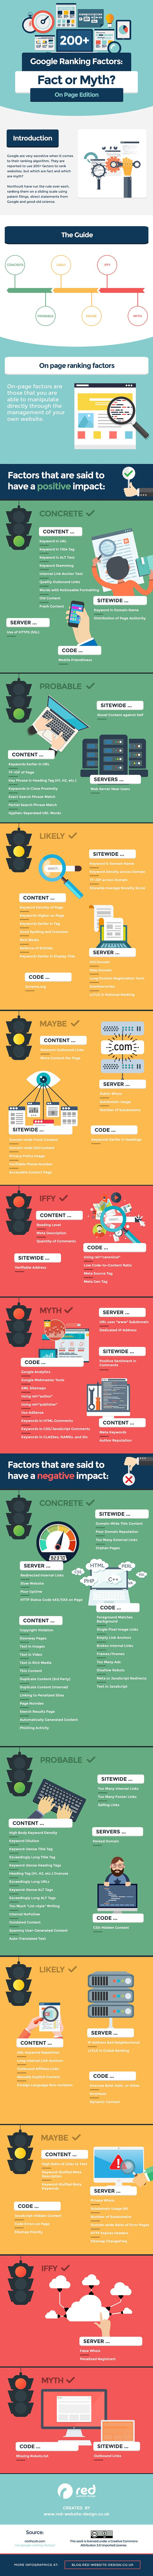 Google's On Page Ranking Factors: Are They Fact Or Myth? [Infographic]   Social Media Today